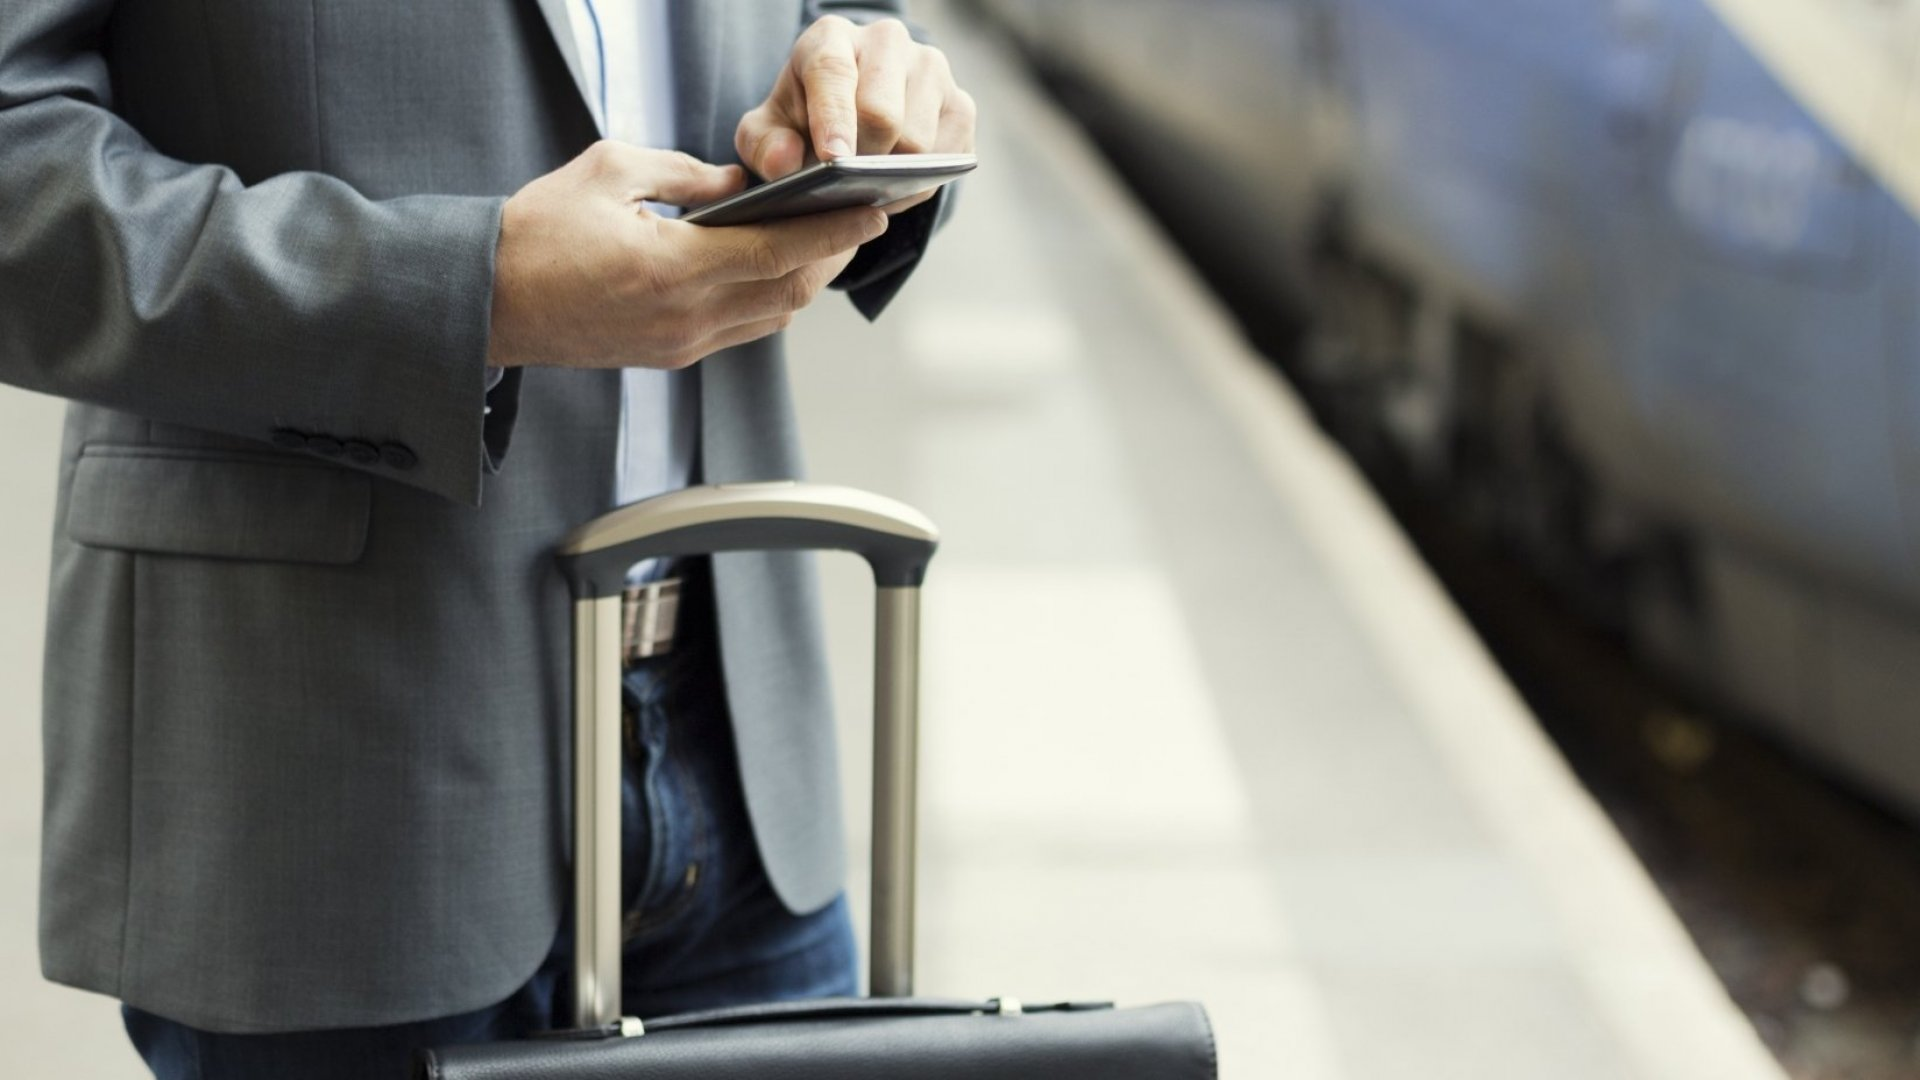 7 Communication Tips for Business Travelers in Countries Where You Don't Speak the Language